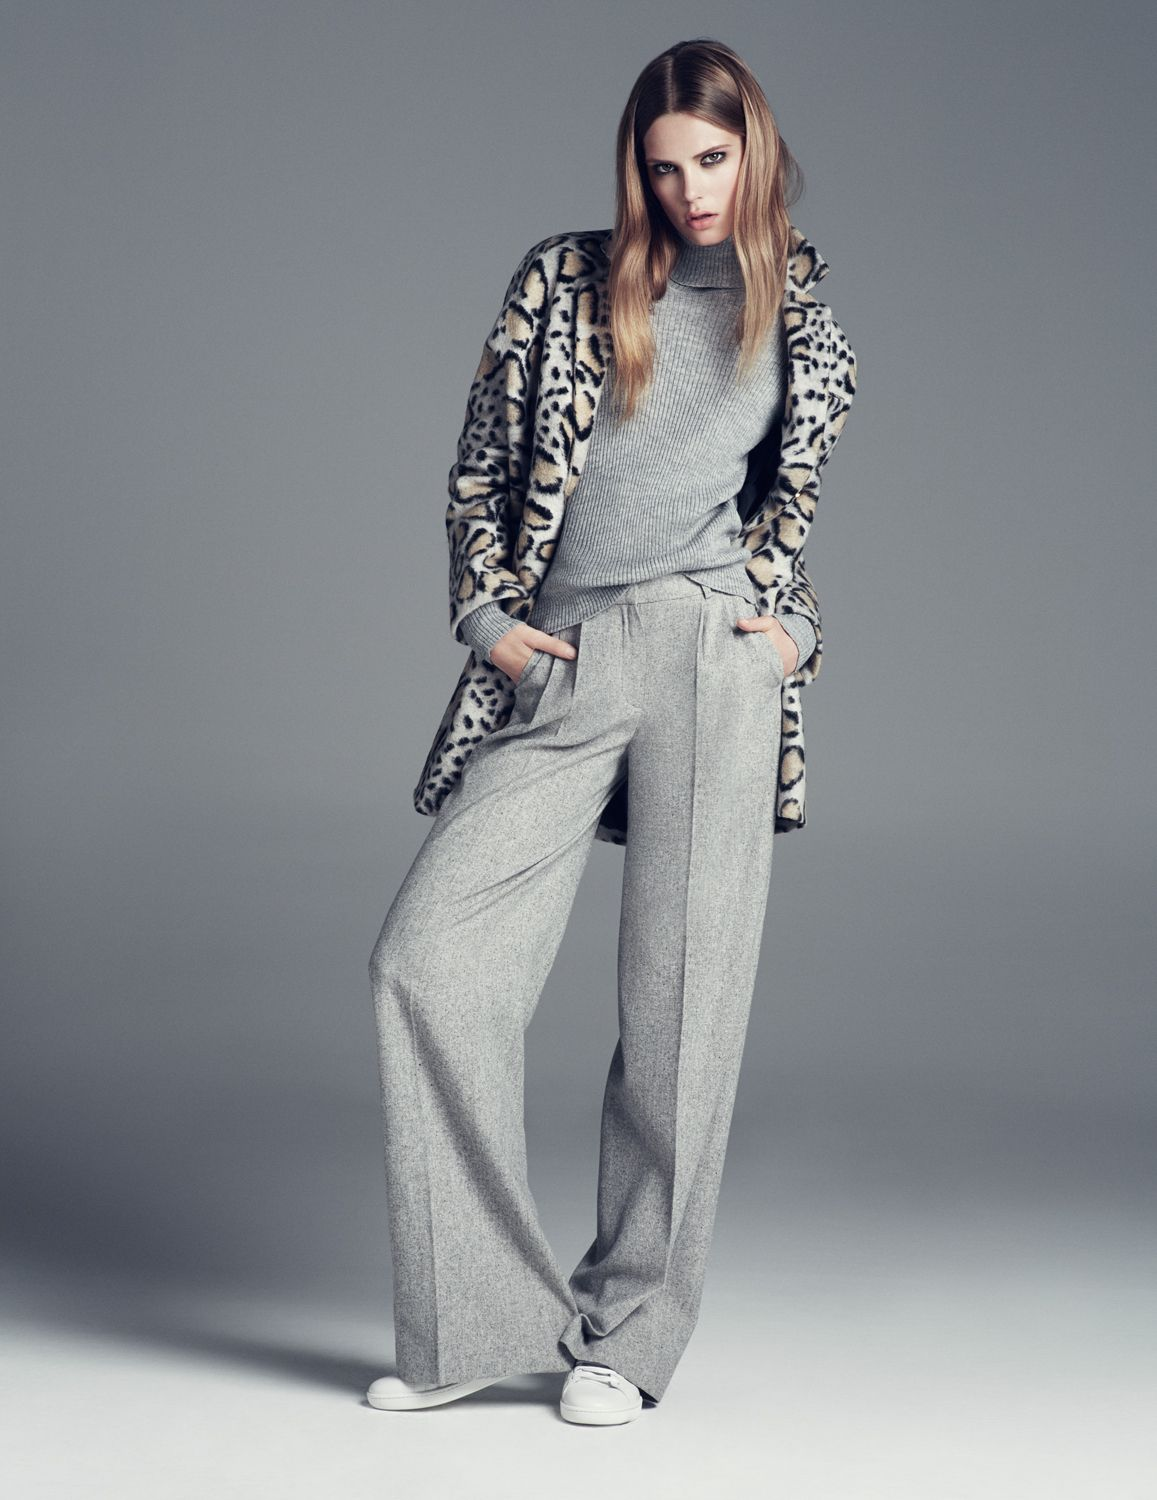 Koton Women 2014-15 Fall & Winter Collection | Koton Women 2014-15 ...